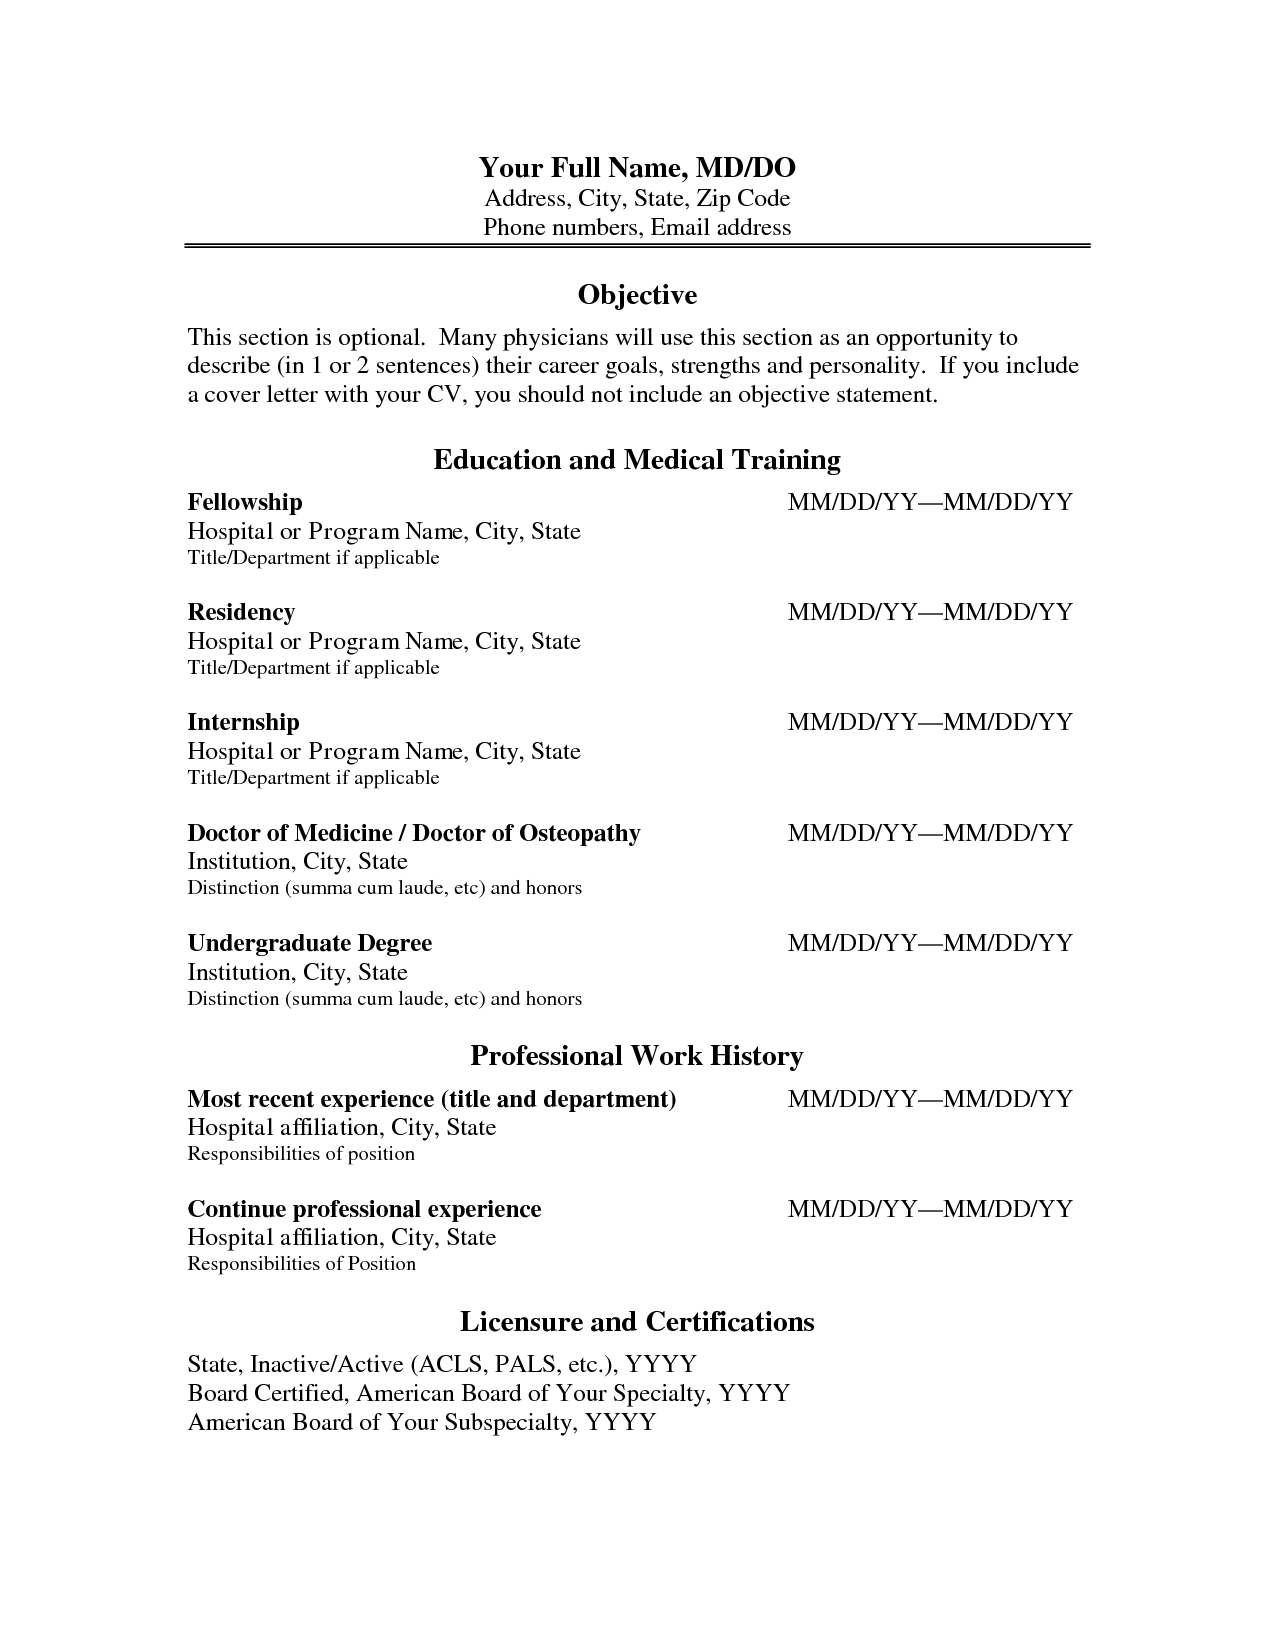 Cv Format Physician Physician Assistant Resume And Curriculum Vitae Cv Template Physician Cv